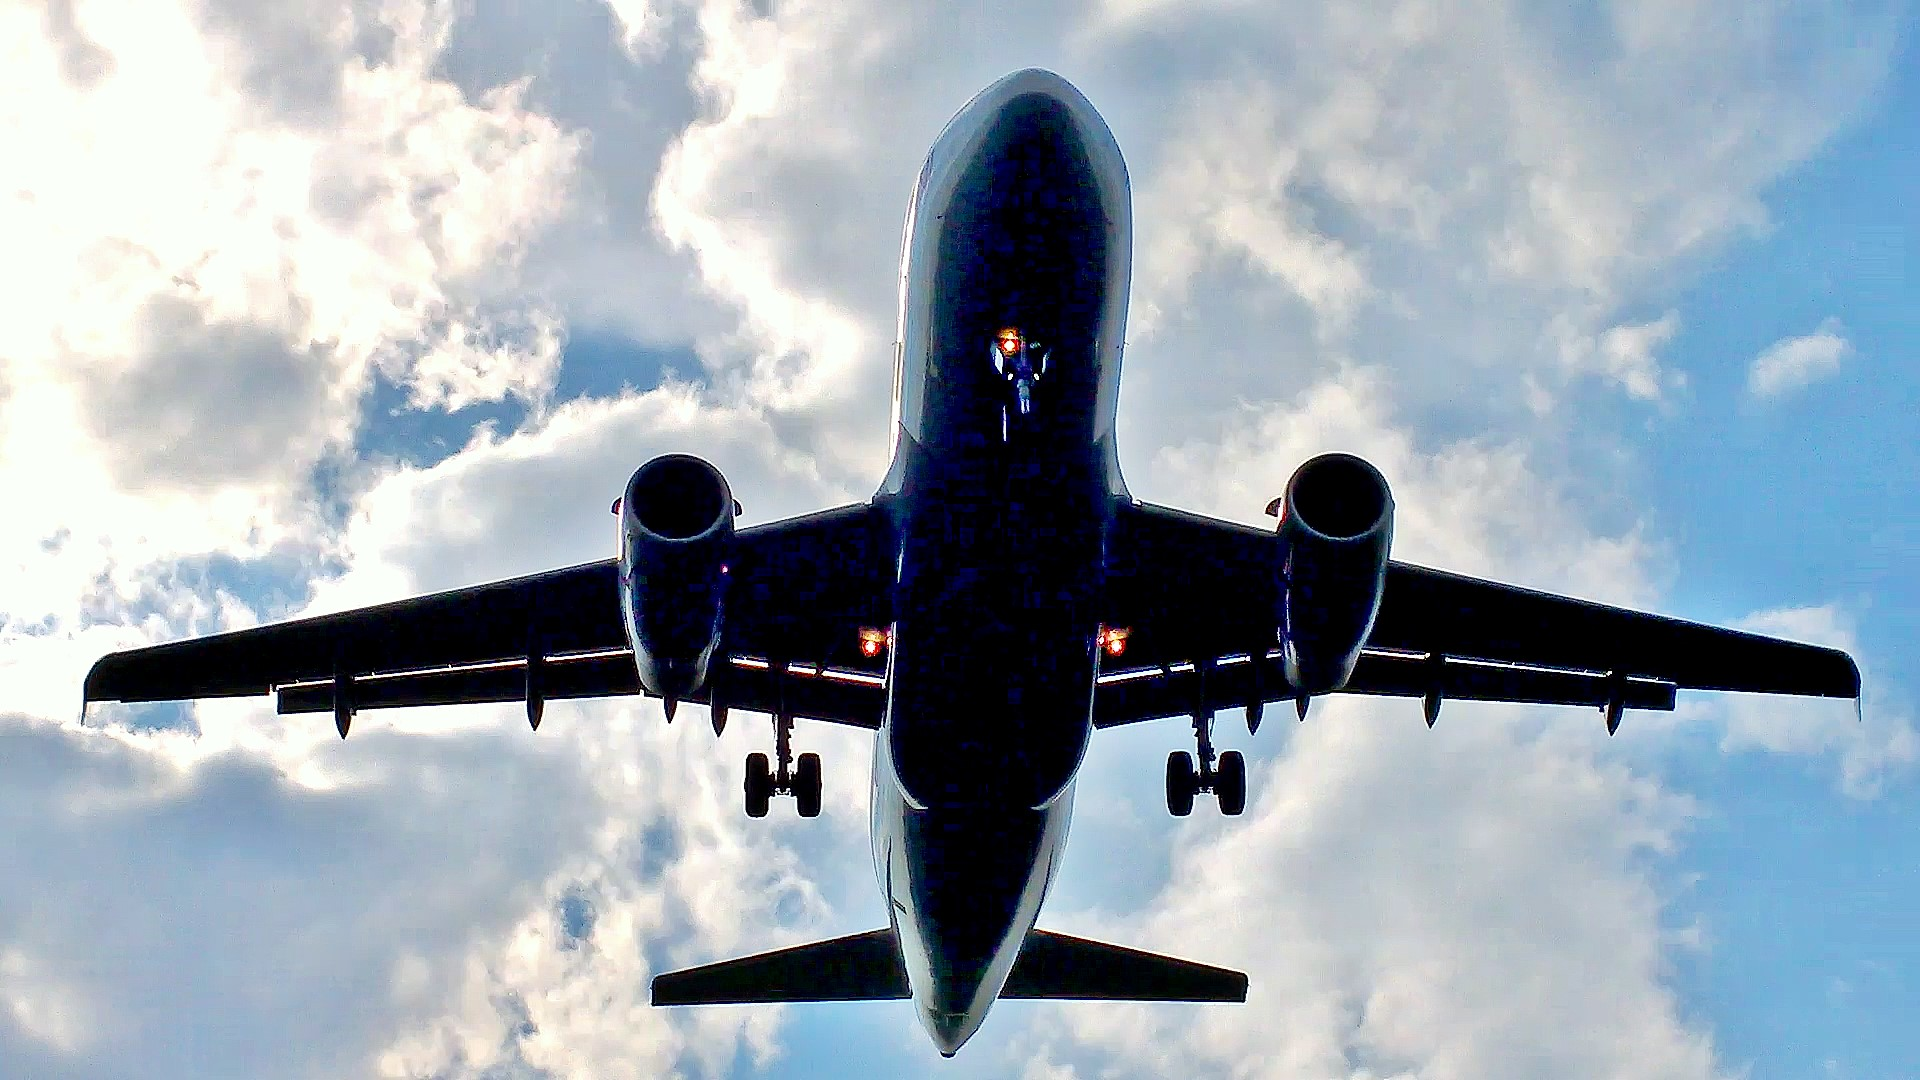 image of an airliner landing